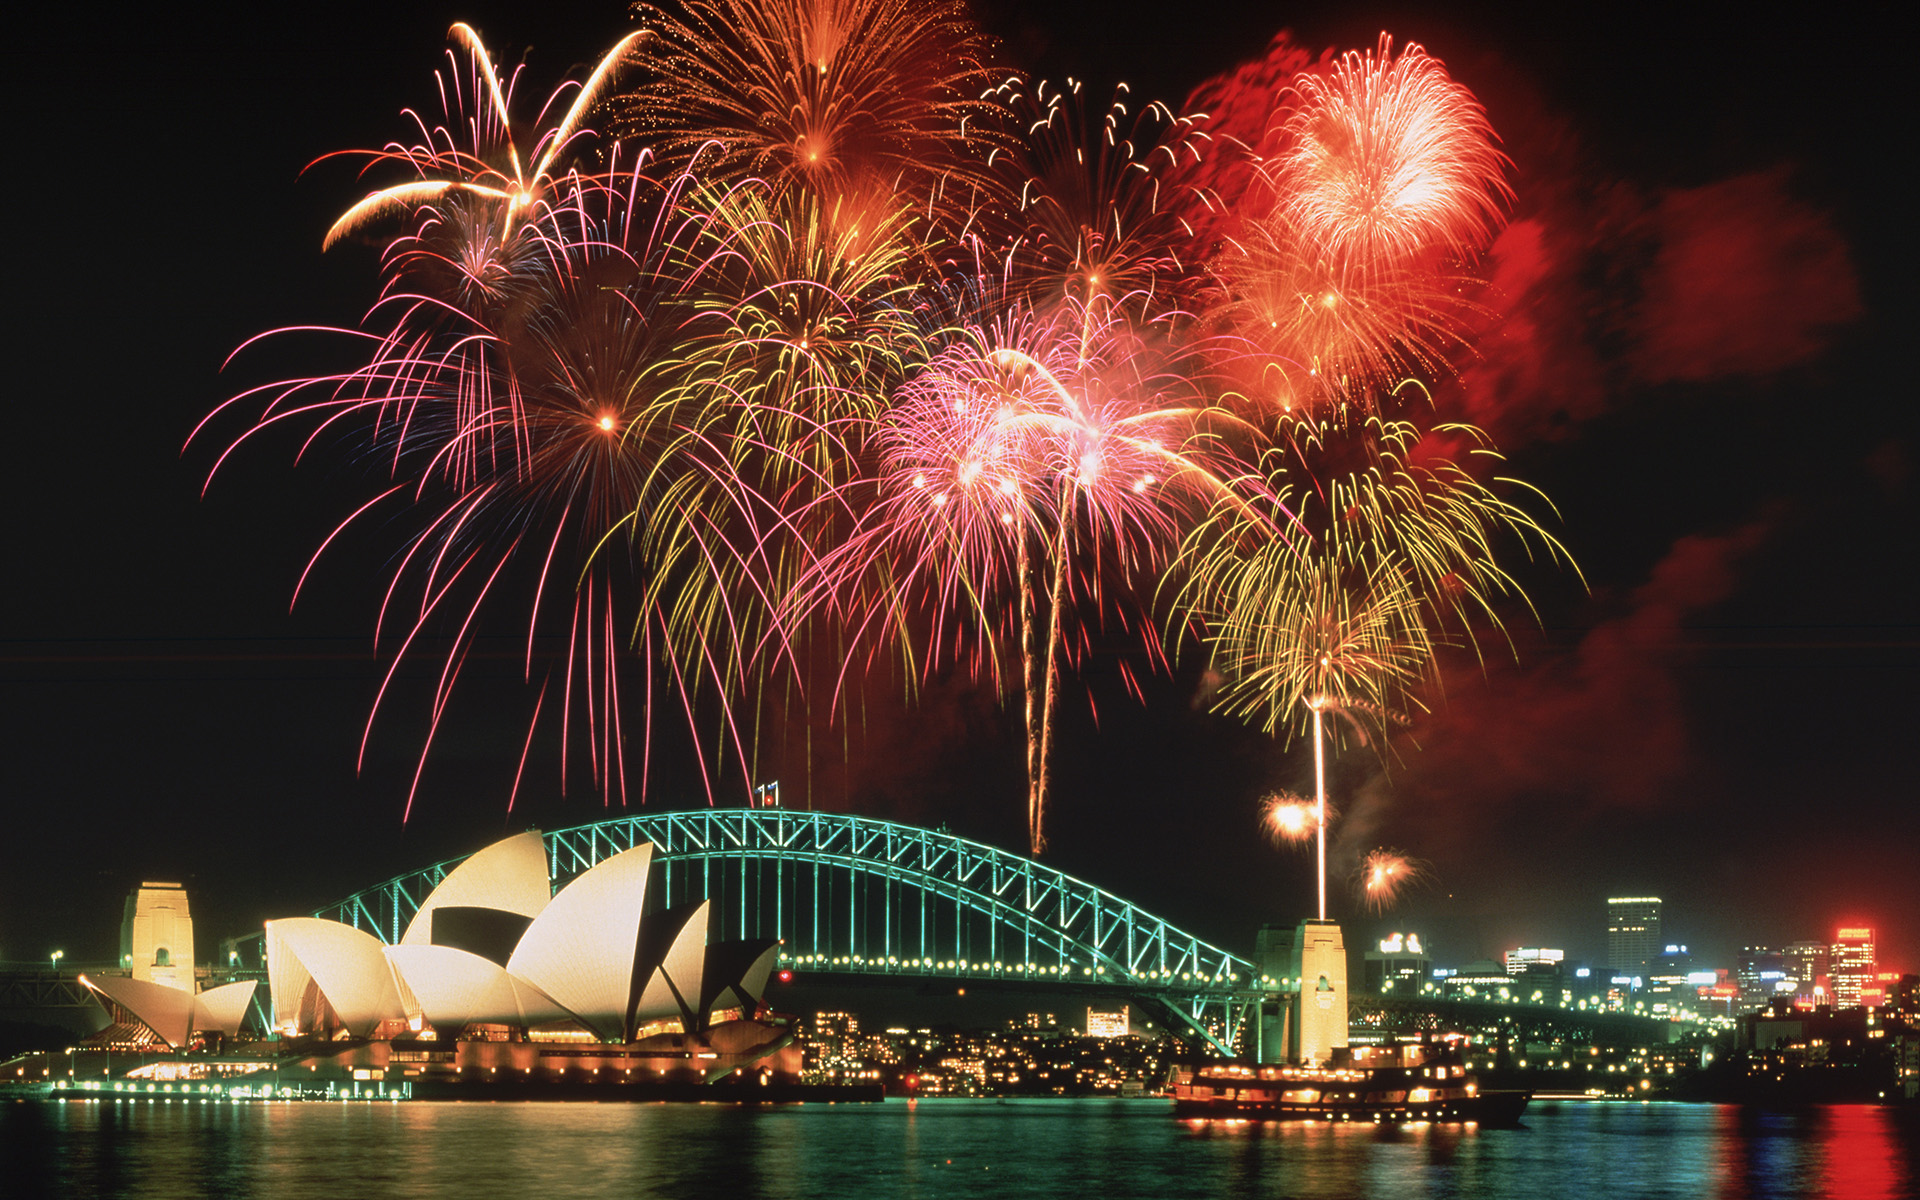 New Years Eve Wallpaper - Wallpaper, High Definition, High Quality ...